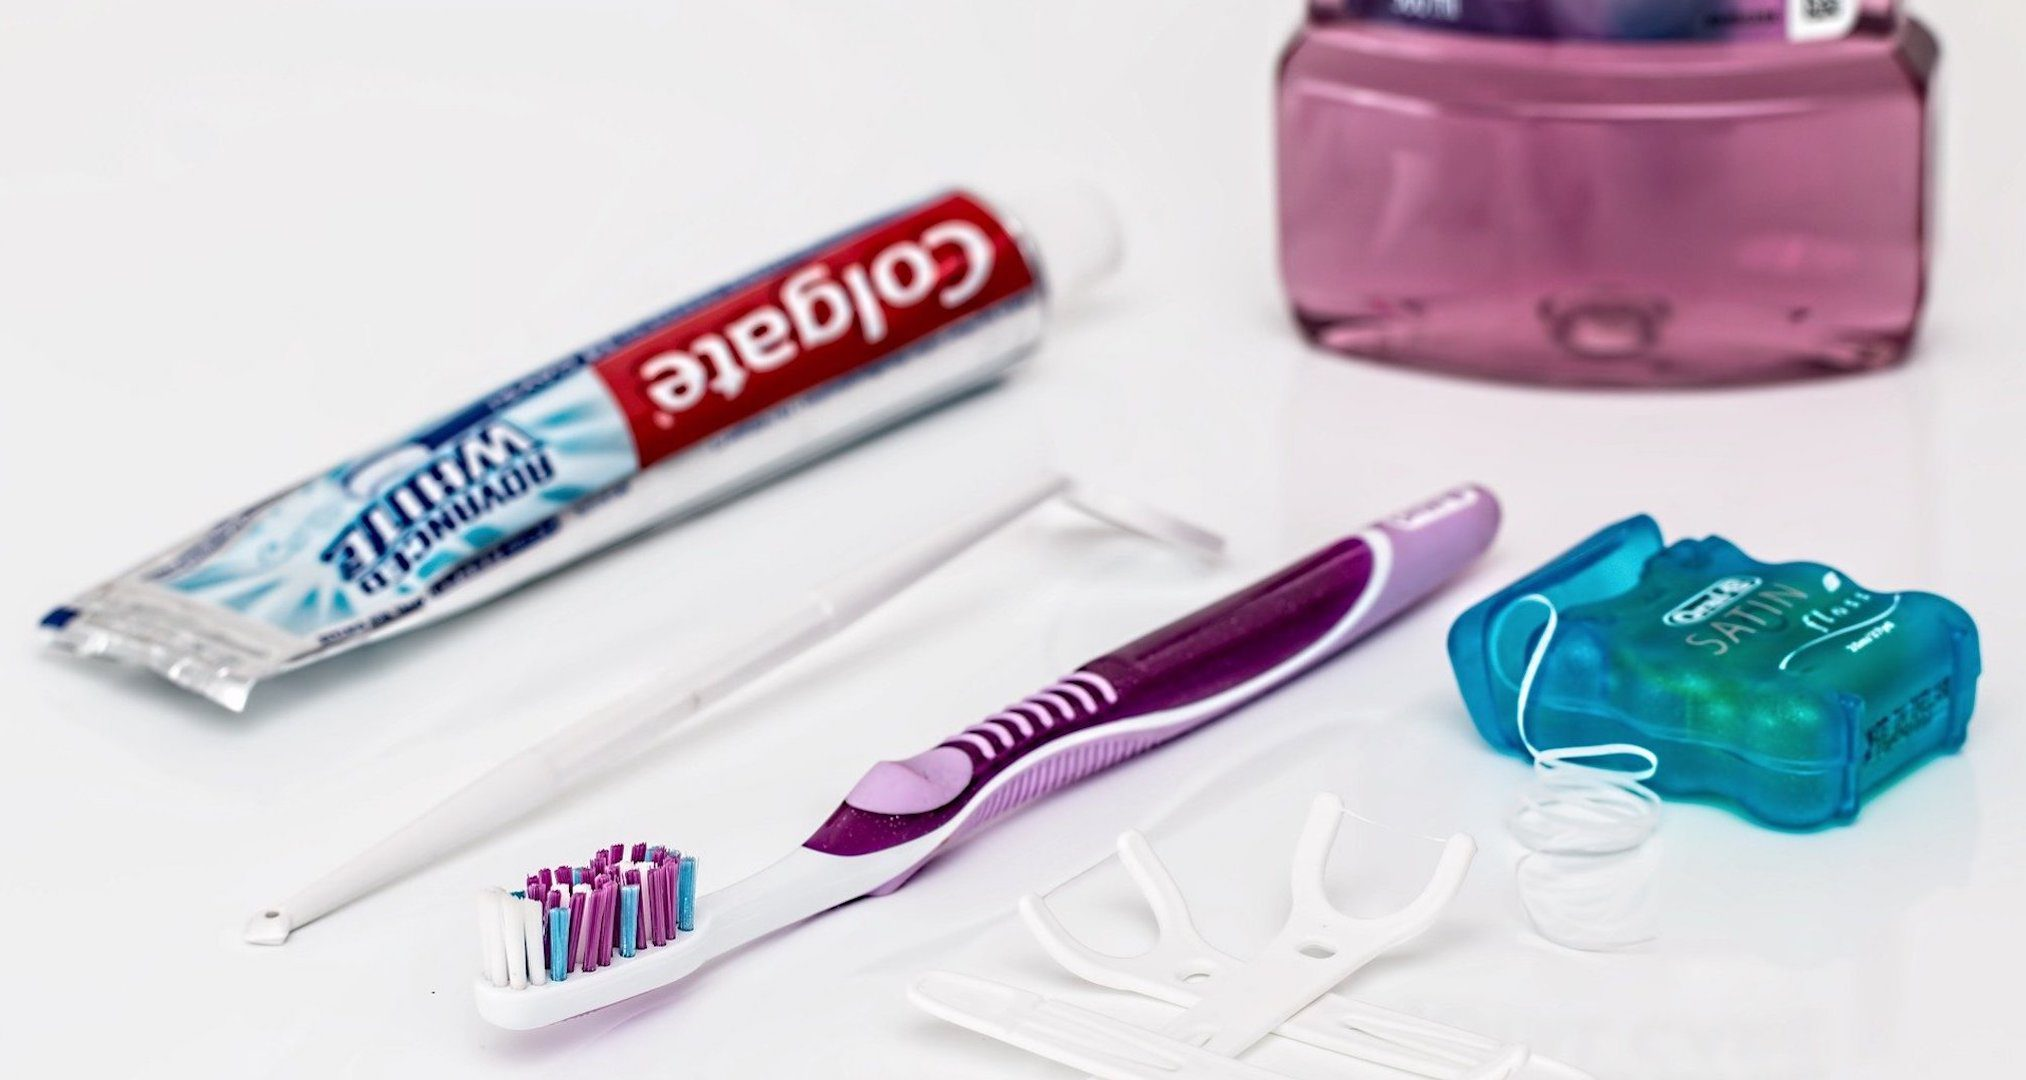 tooth care items